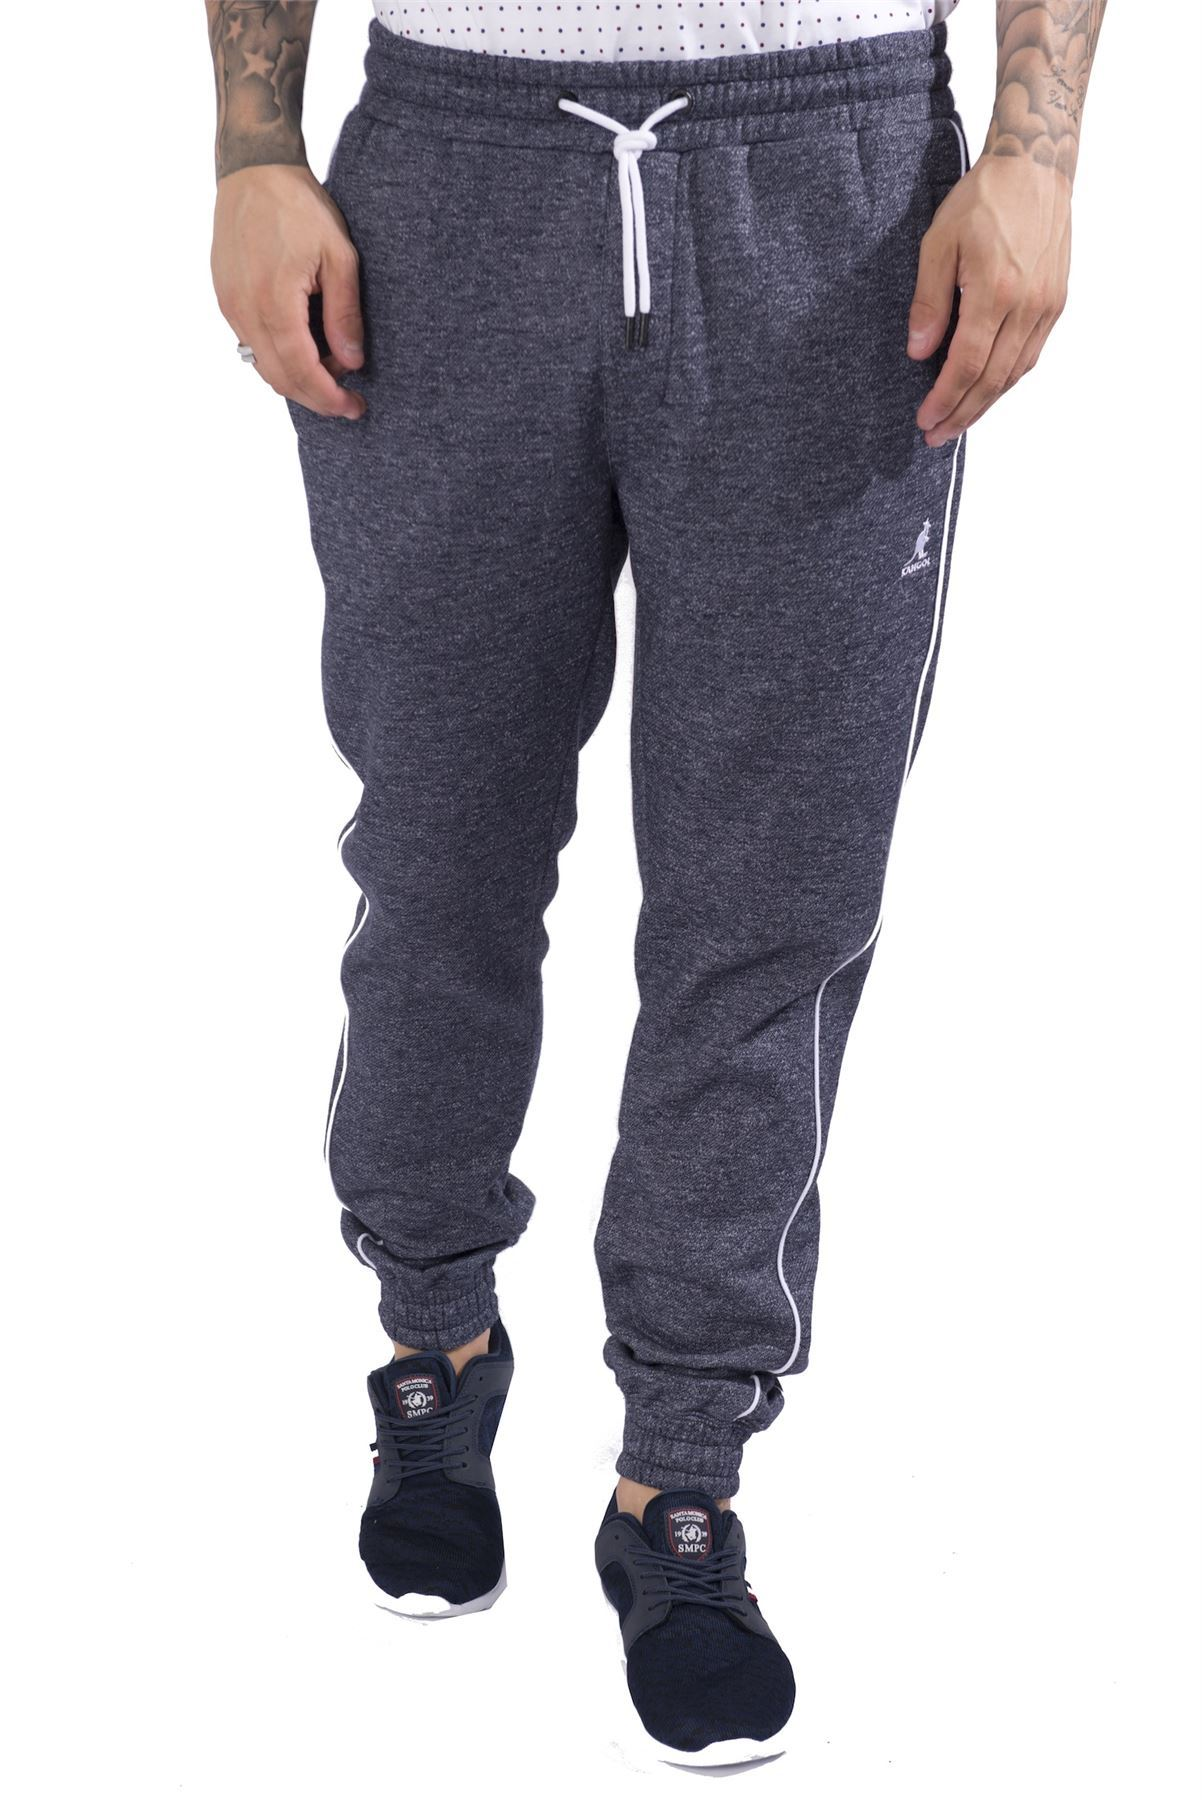 Our elastic cuff sweatpants are a customer favorite due to their extra roomy and relaxed fit. Customers say these sweatpants don't shrink in the wash and have good quality stitching and construction. Men's Clothing Size Chart International size chart.